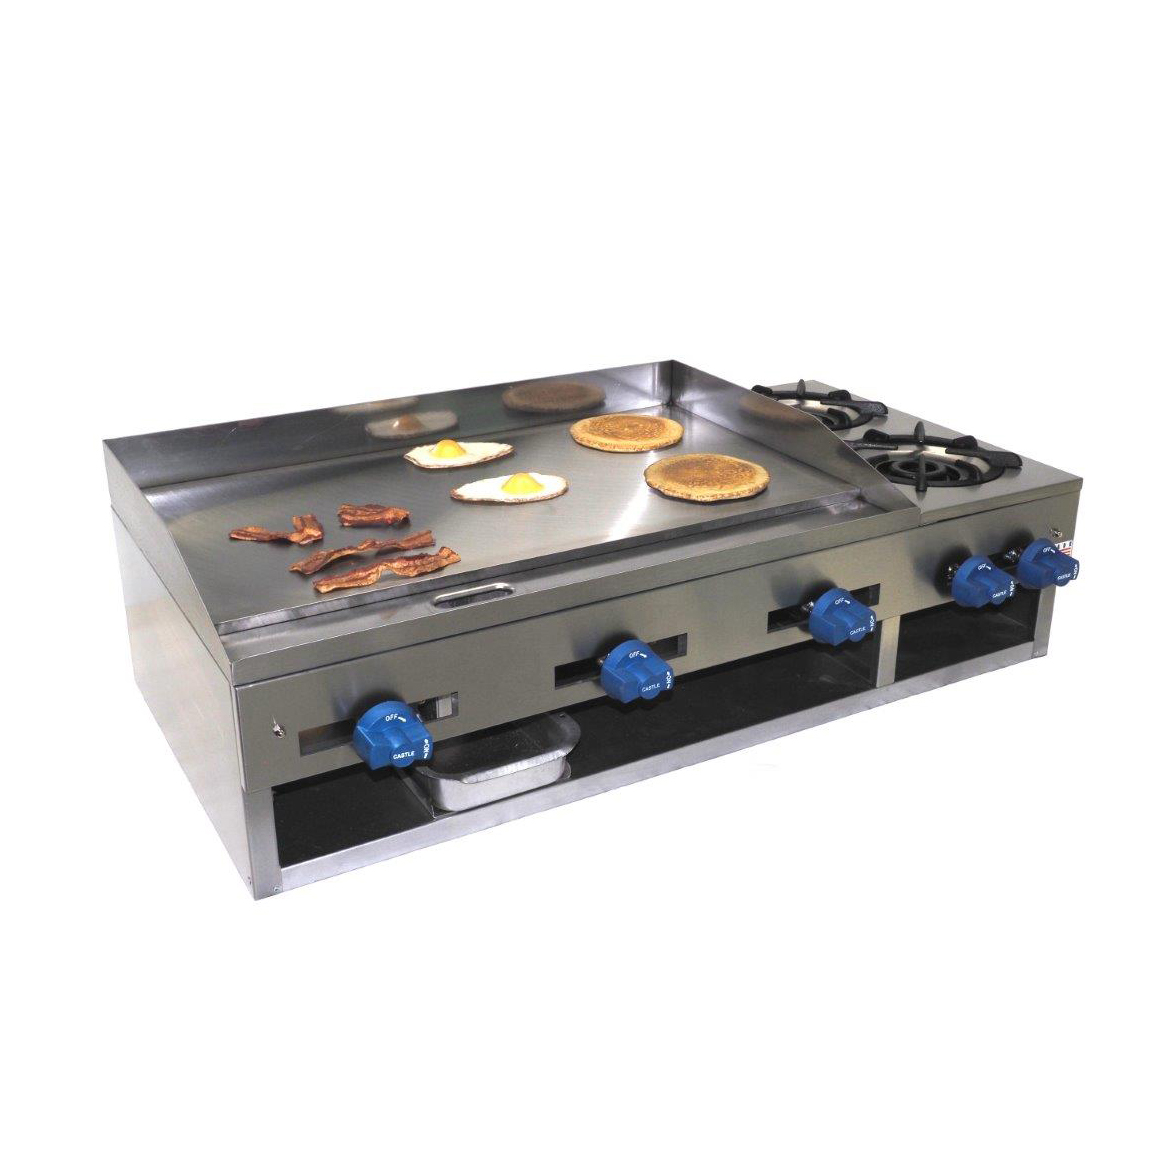 Comstock-Castle 10301 griddle / hotplate, gas, countertop